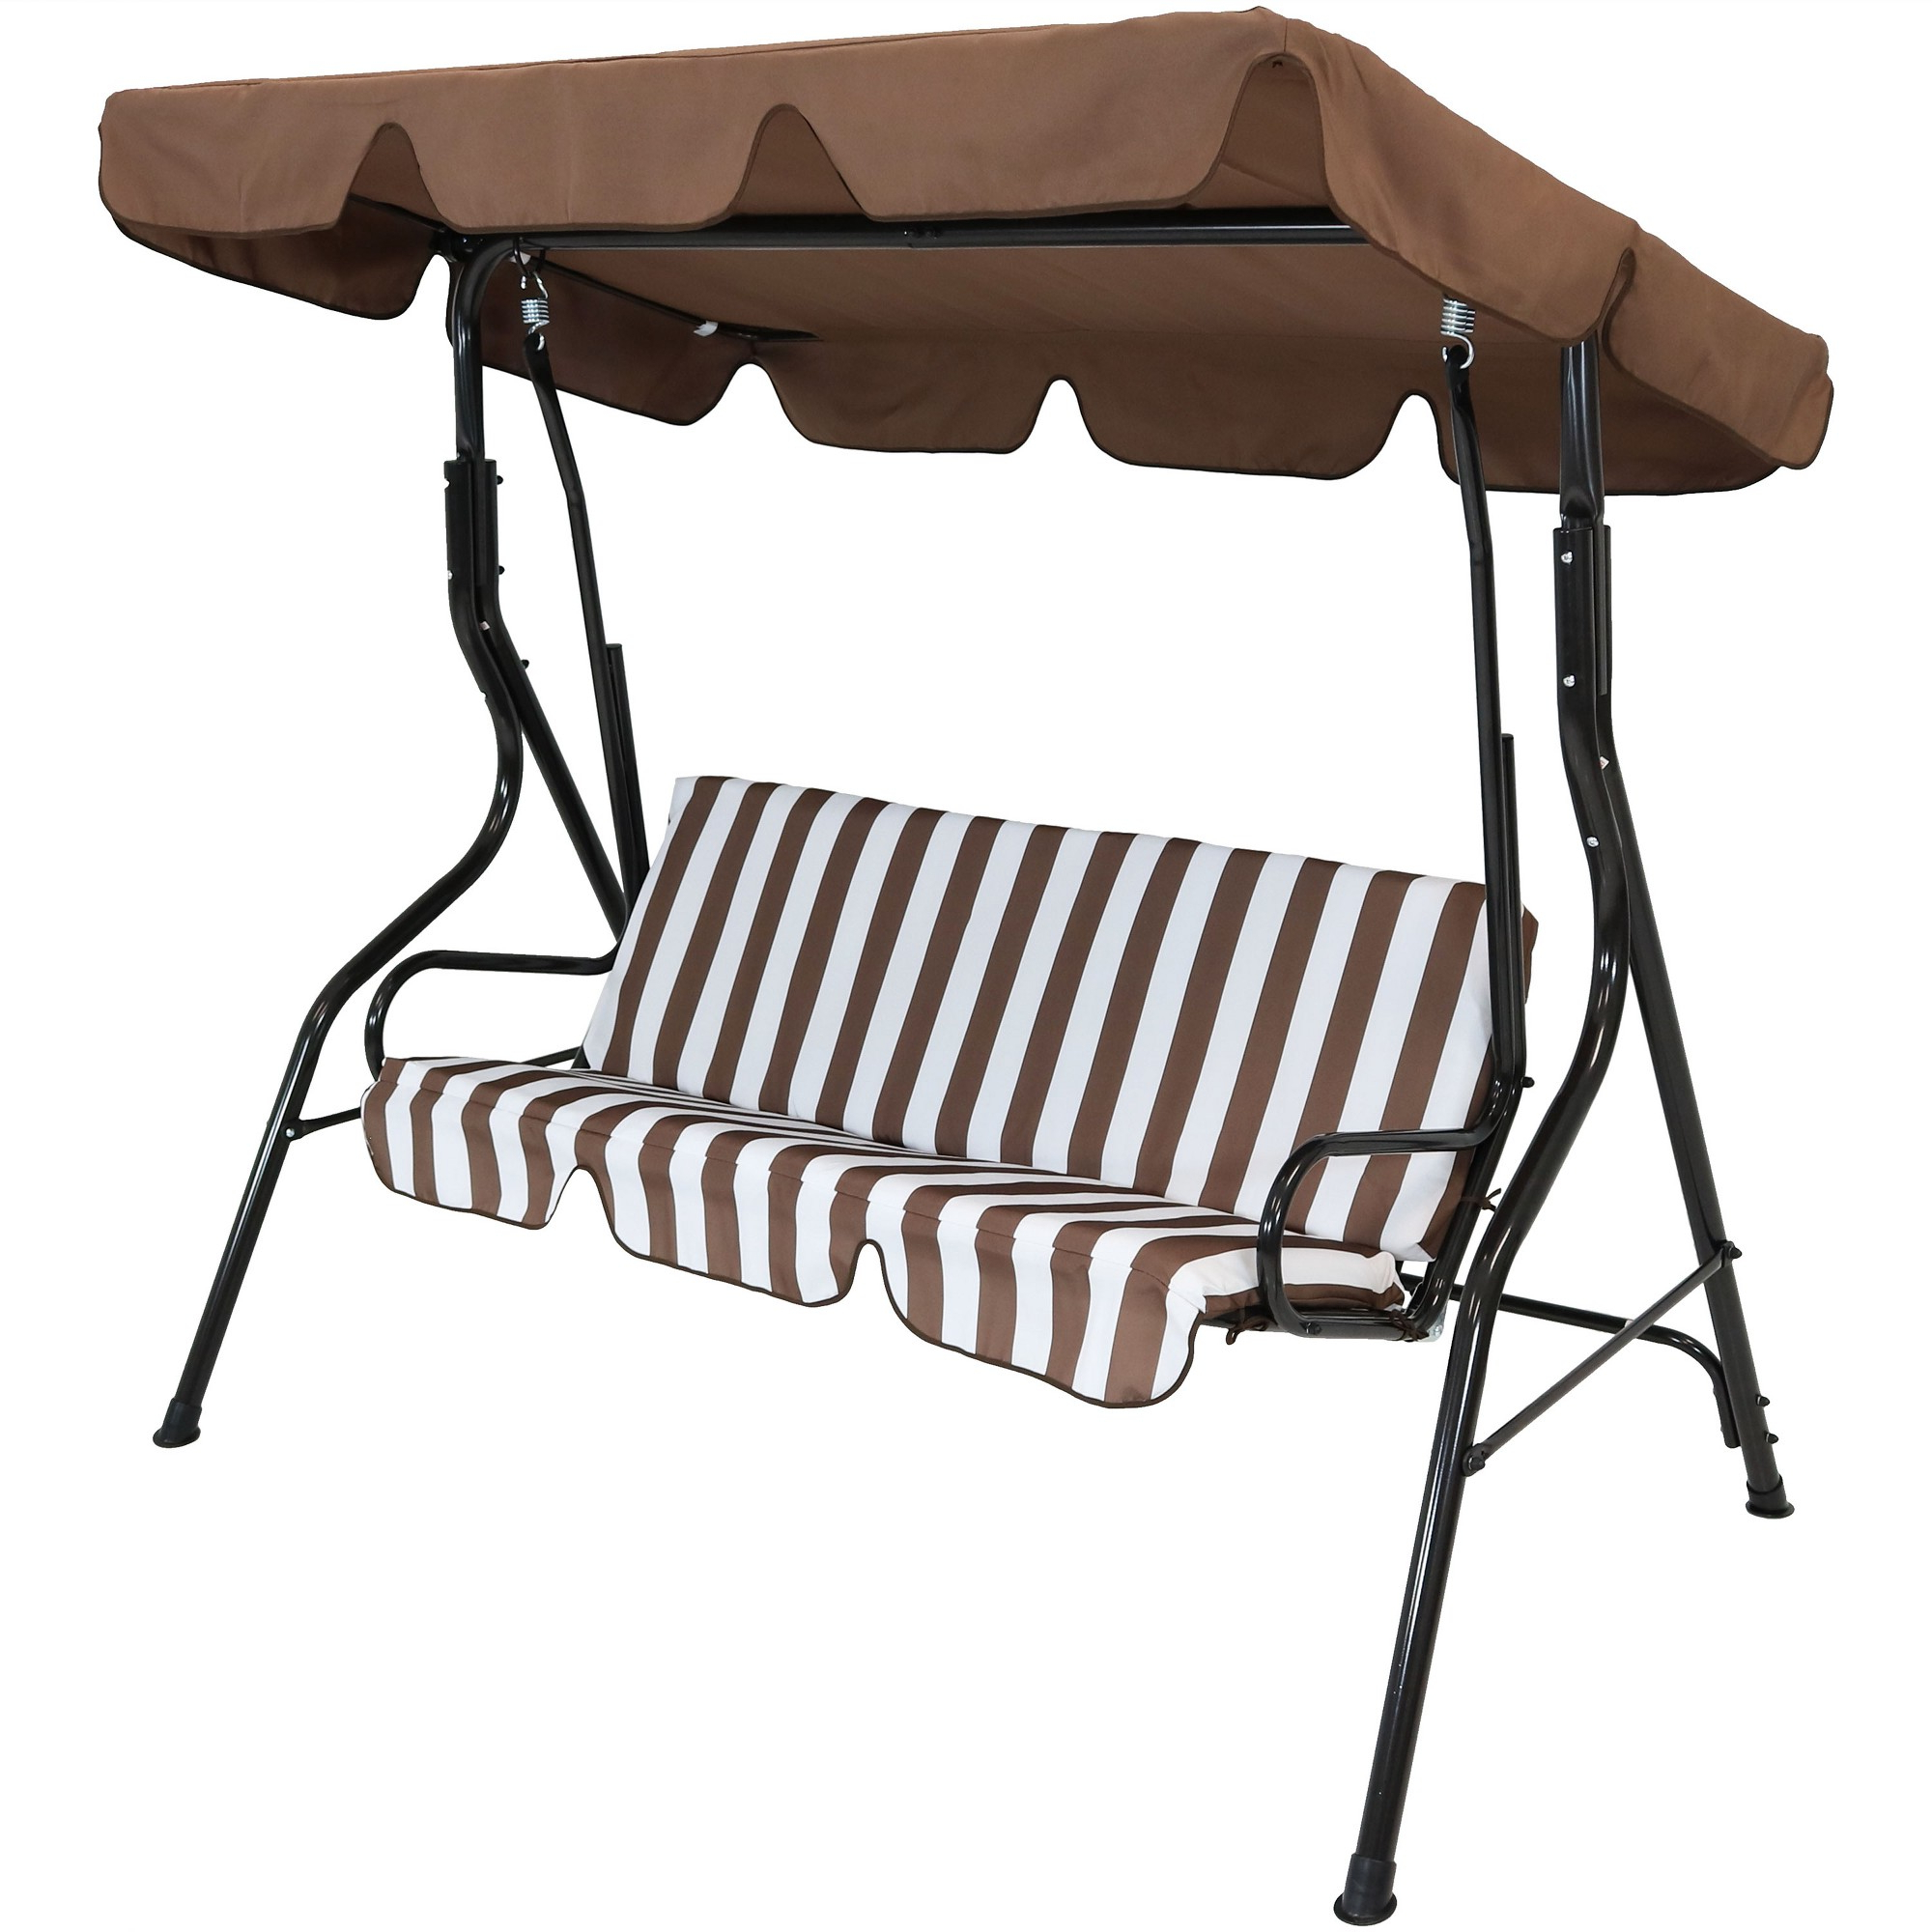 Latest 2 Person Black Steel Outdoor Swings Intended For 2 Person Steel Frame Porch Swing With Adjustable Canopy (View 15 of 30)